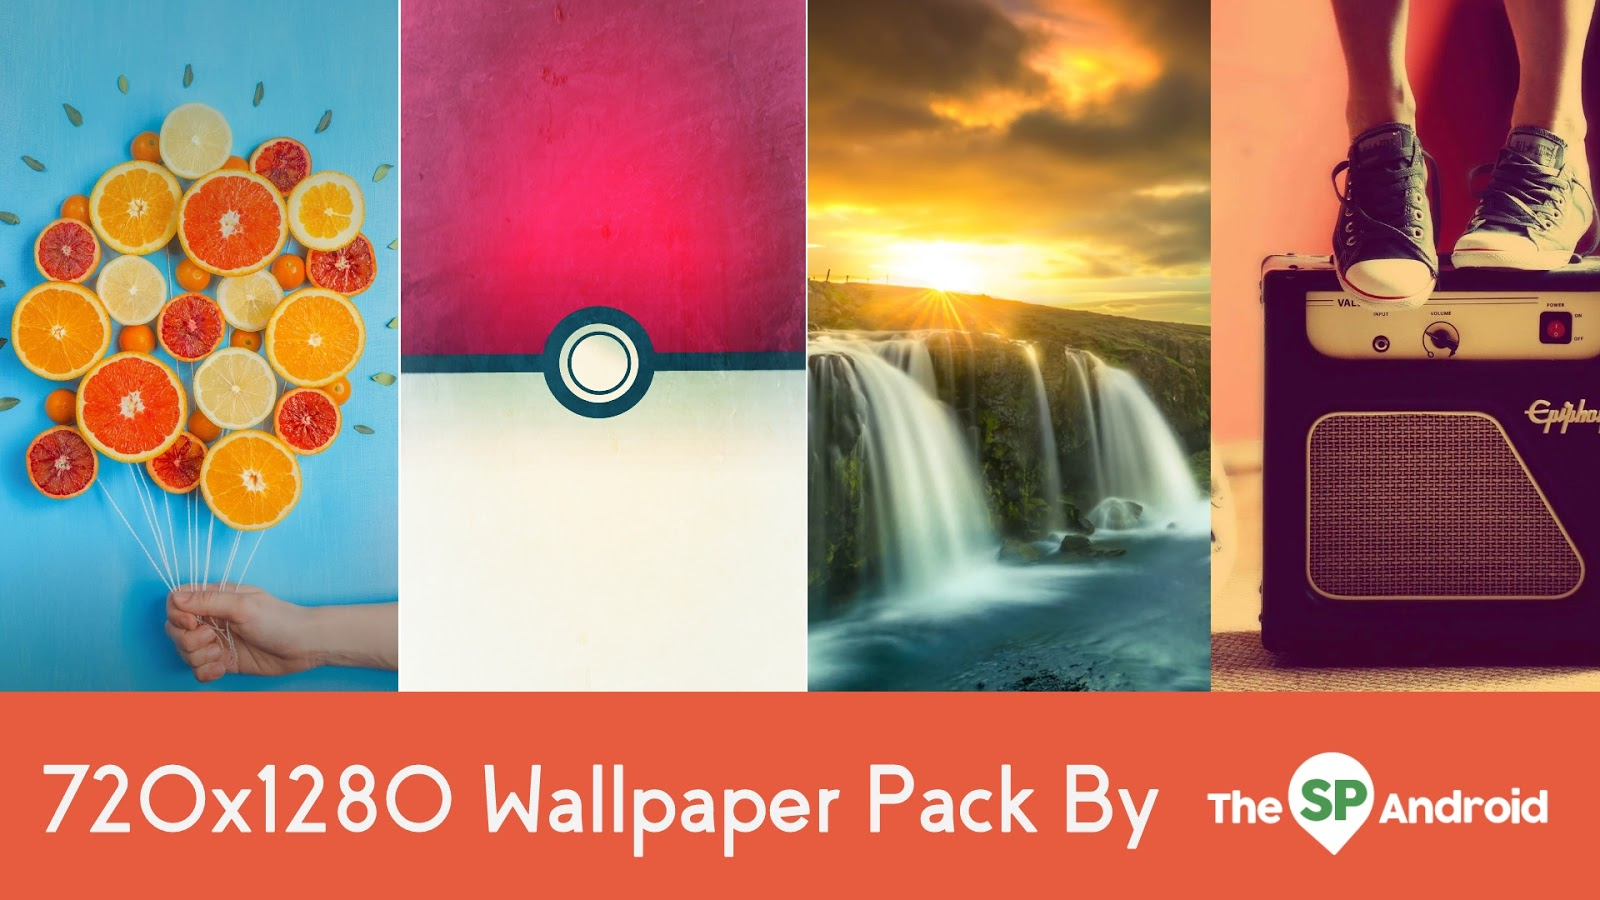 Beautiful Wallpapers For 720x1280 Screen Resolution Part 1